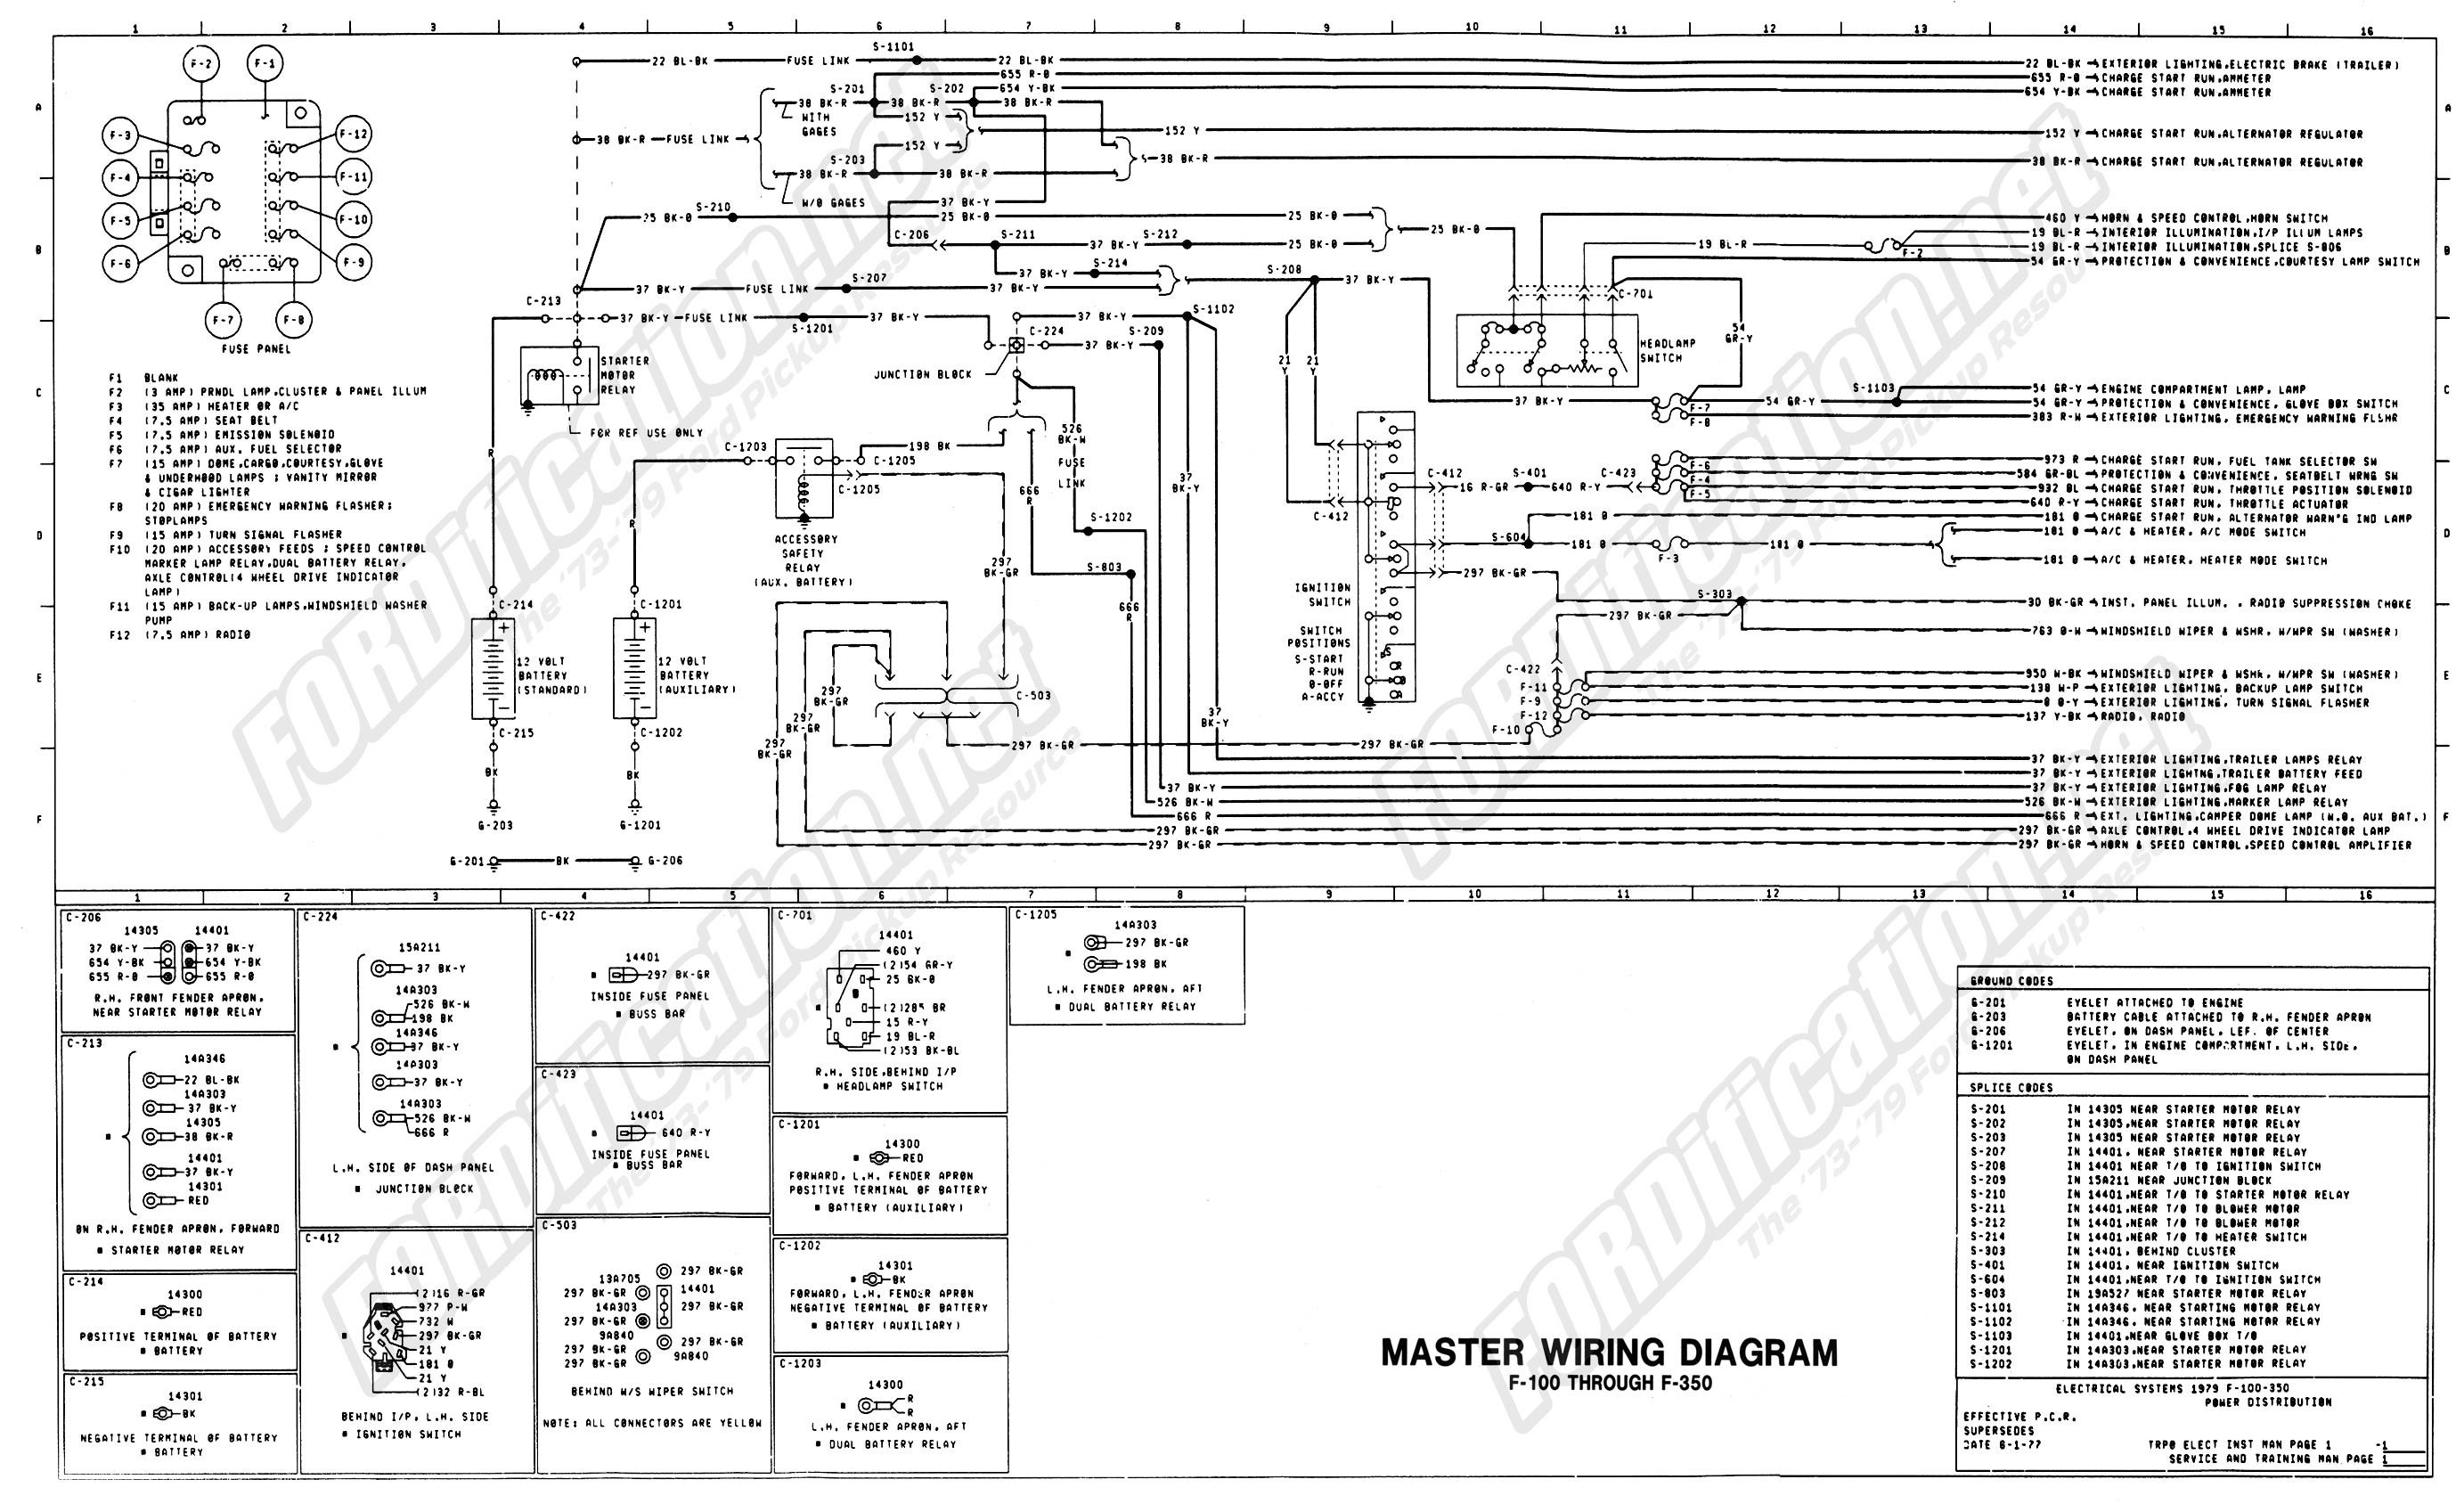 Mack Truck Fuse Box Diagram My Wiring Diagram 1999 Ford Windstar Fuse Box  Diagram 1969 Ford Fuse Box Diagram